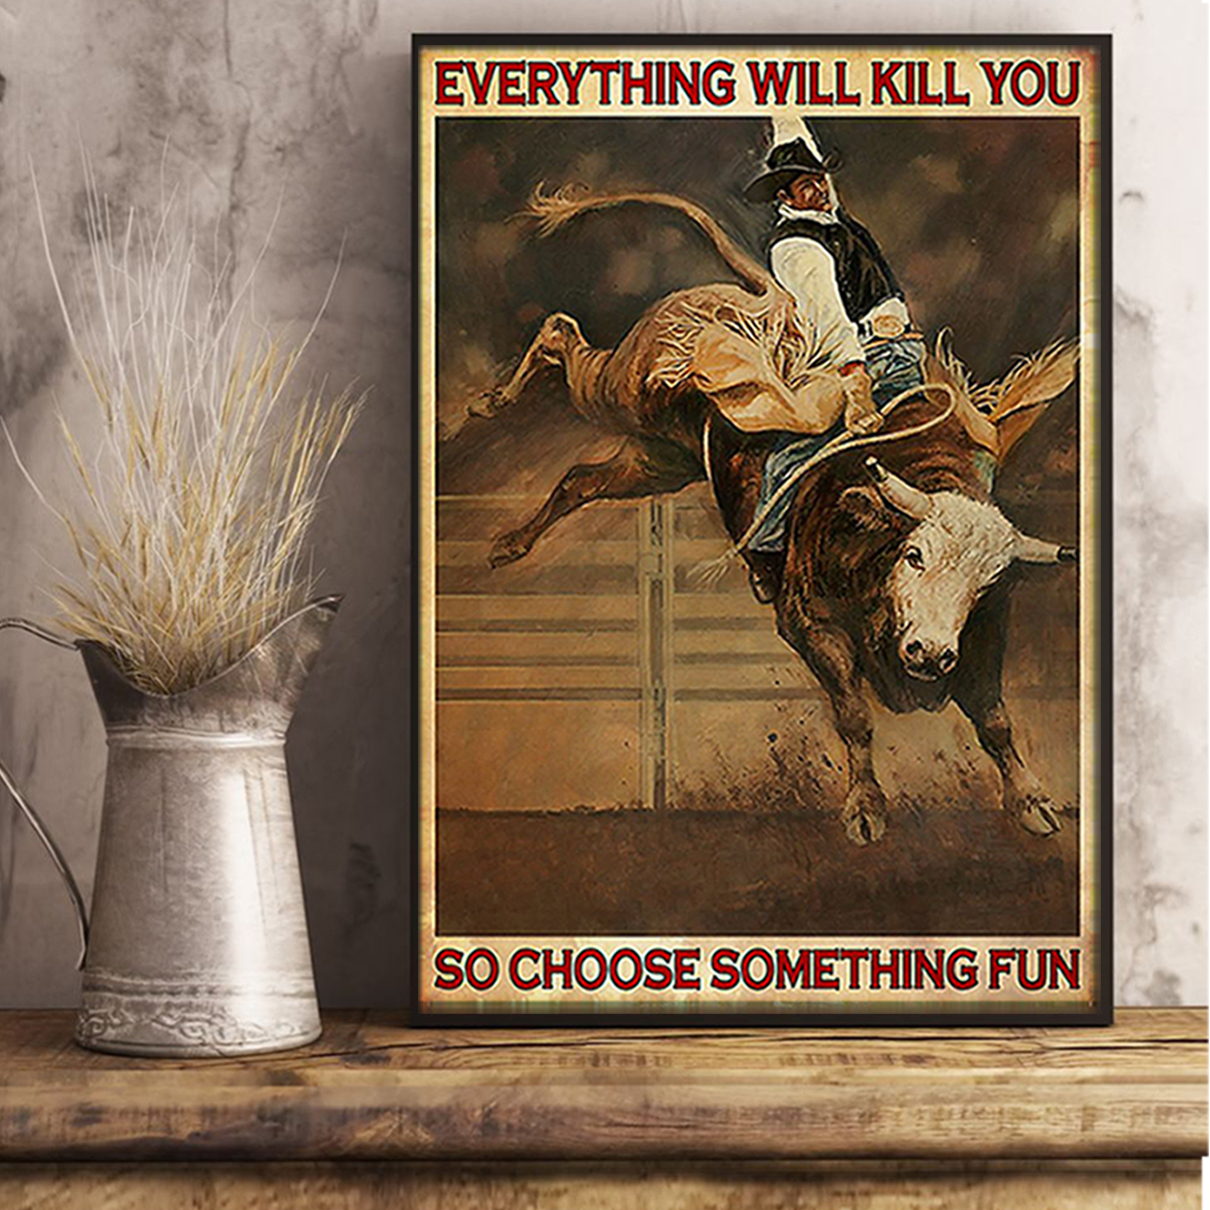 Bull riding rodeo everything will kill you so choose something fun poster A3